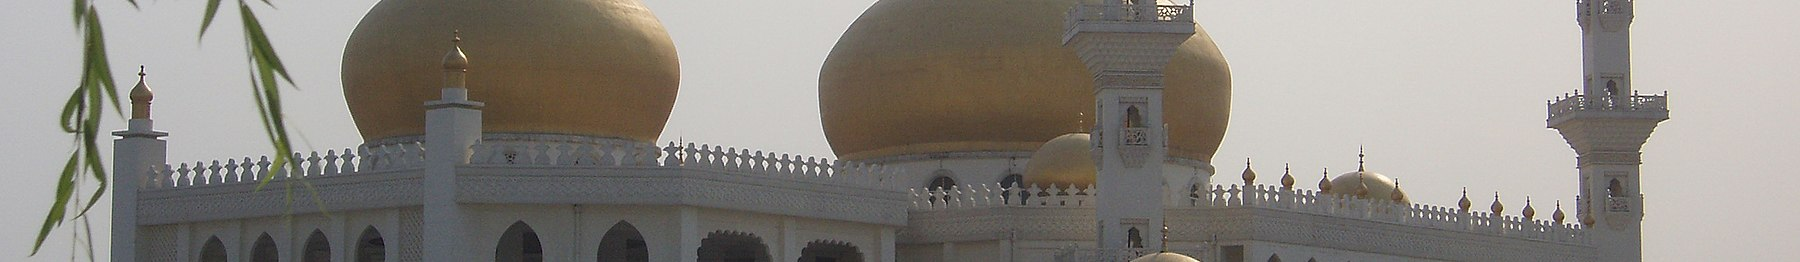 YinchuanMosque2 Wikivoyage banner.jpg